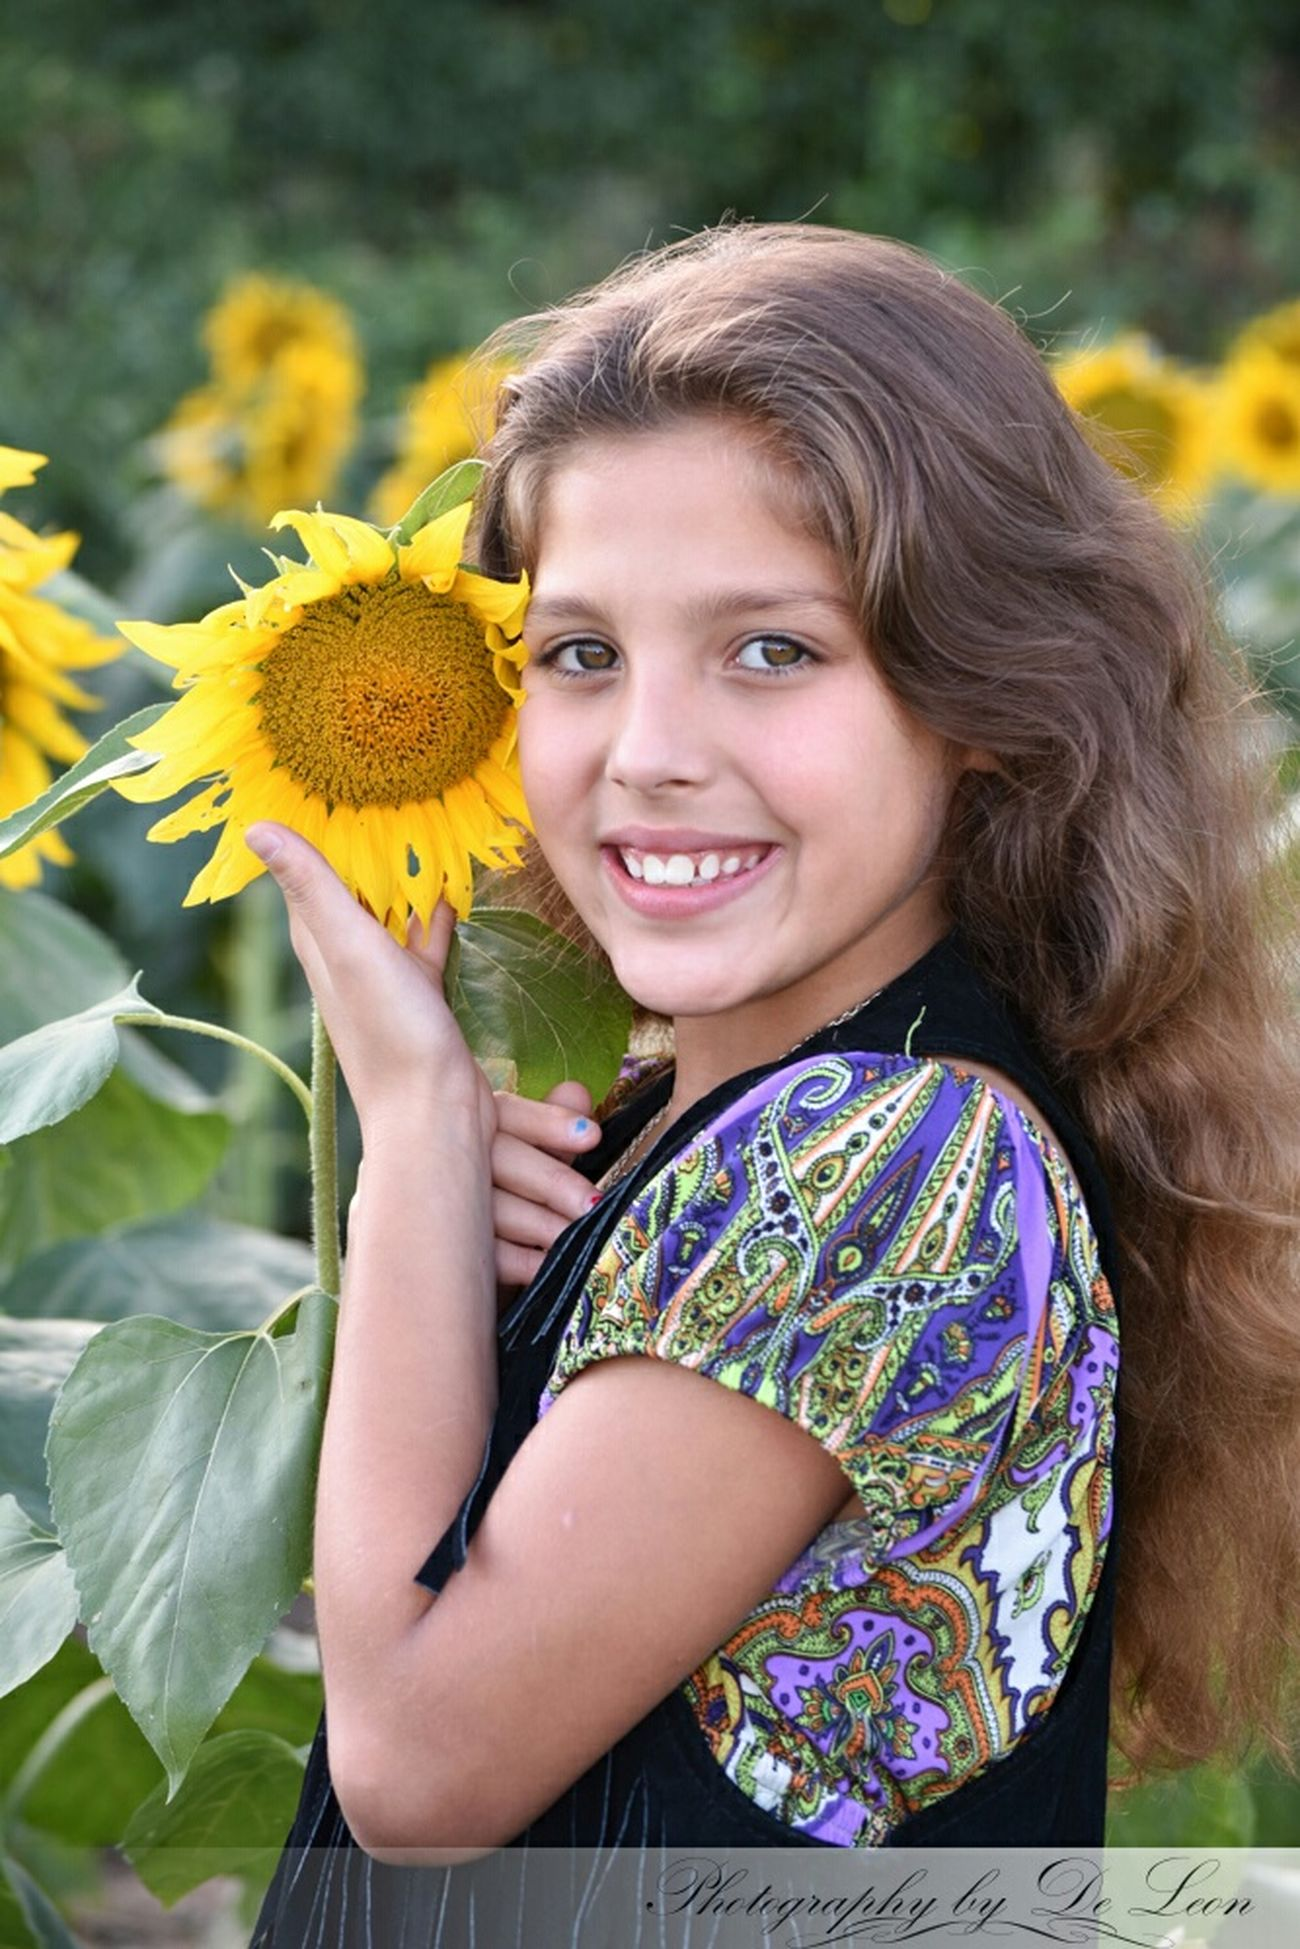 Sunflowers🌻 Kansas Taking Photos Family MyNeice Check This Out Eeyem Kid Portrait Cuteeee♥♡♥ Helloworld